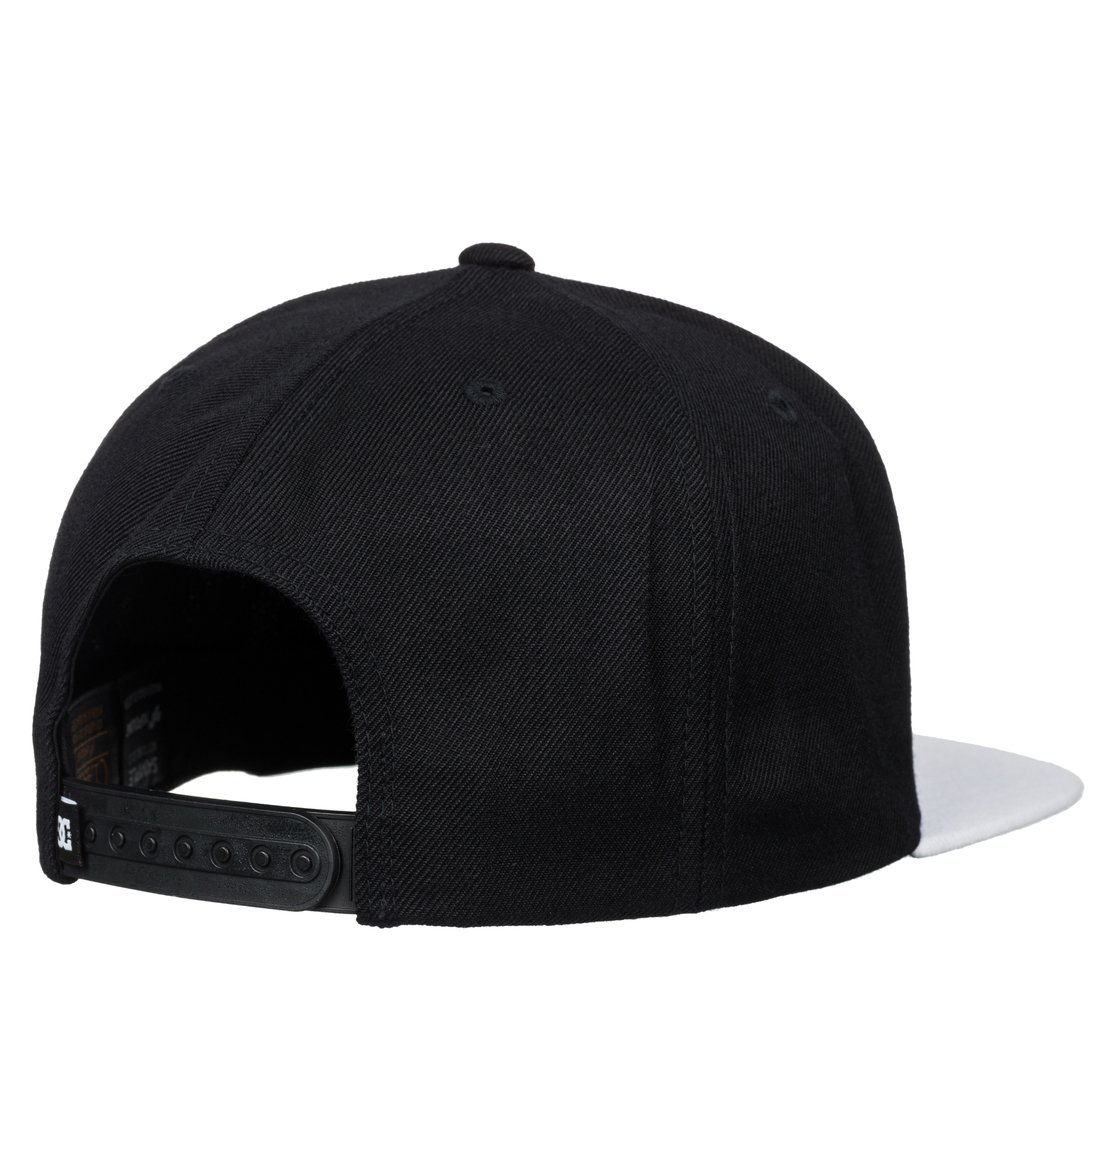 b8c55c9f065390 3 Circulate - Gorra Negro ADBHA03027 DC Shoes